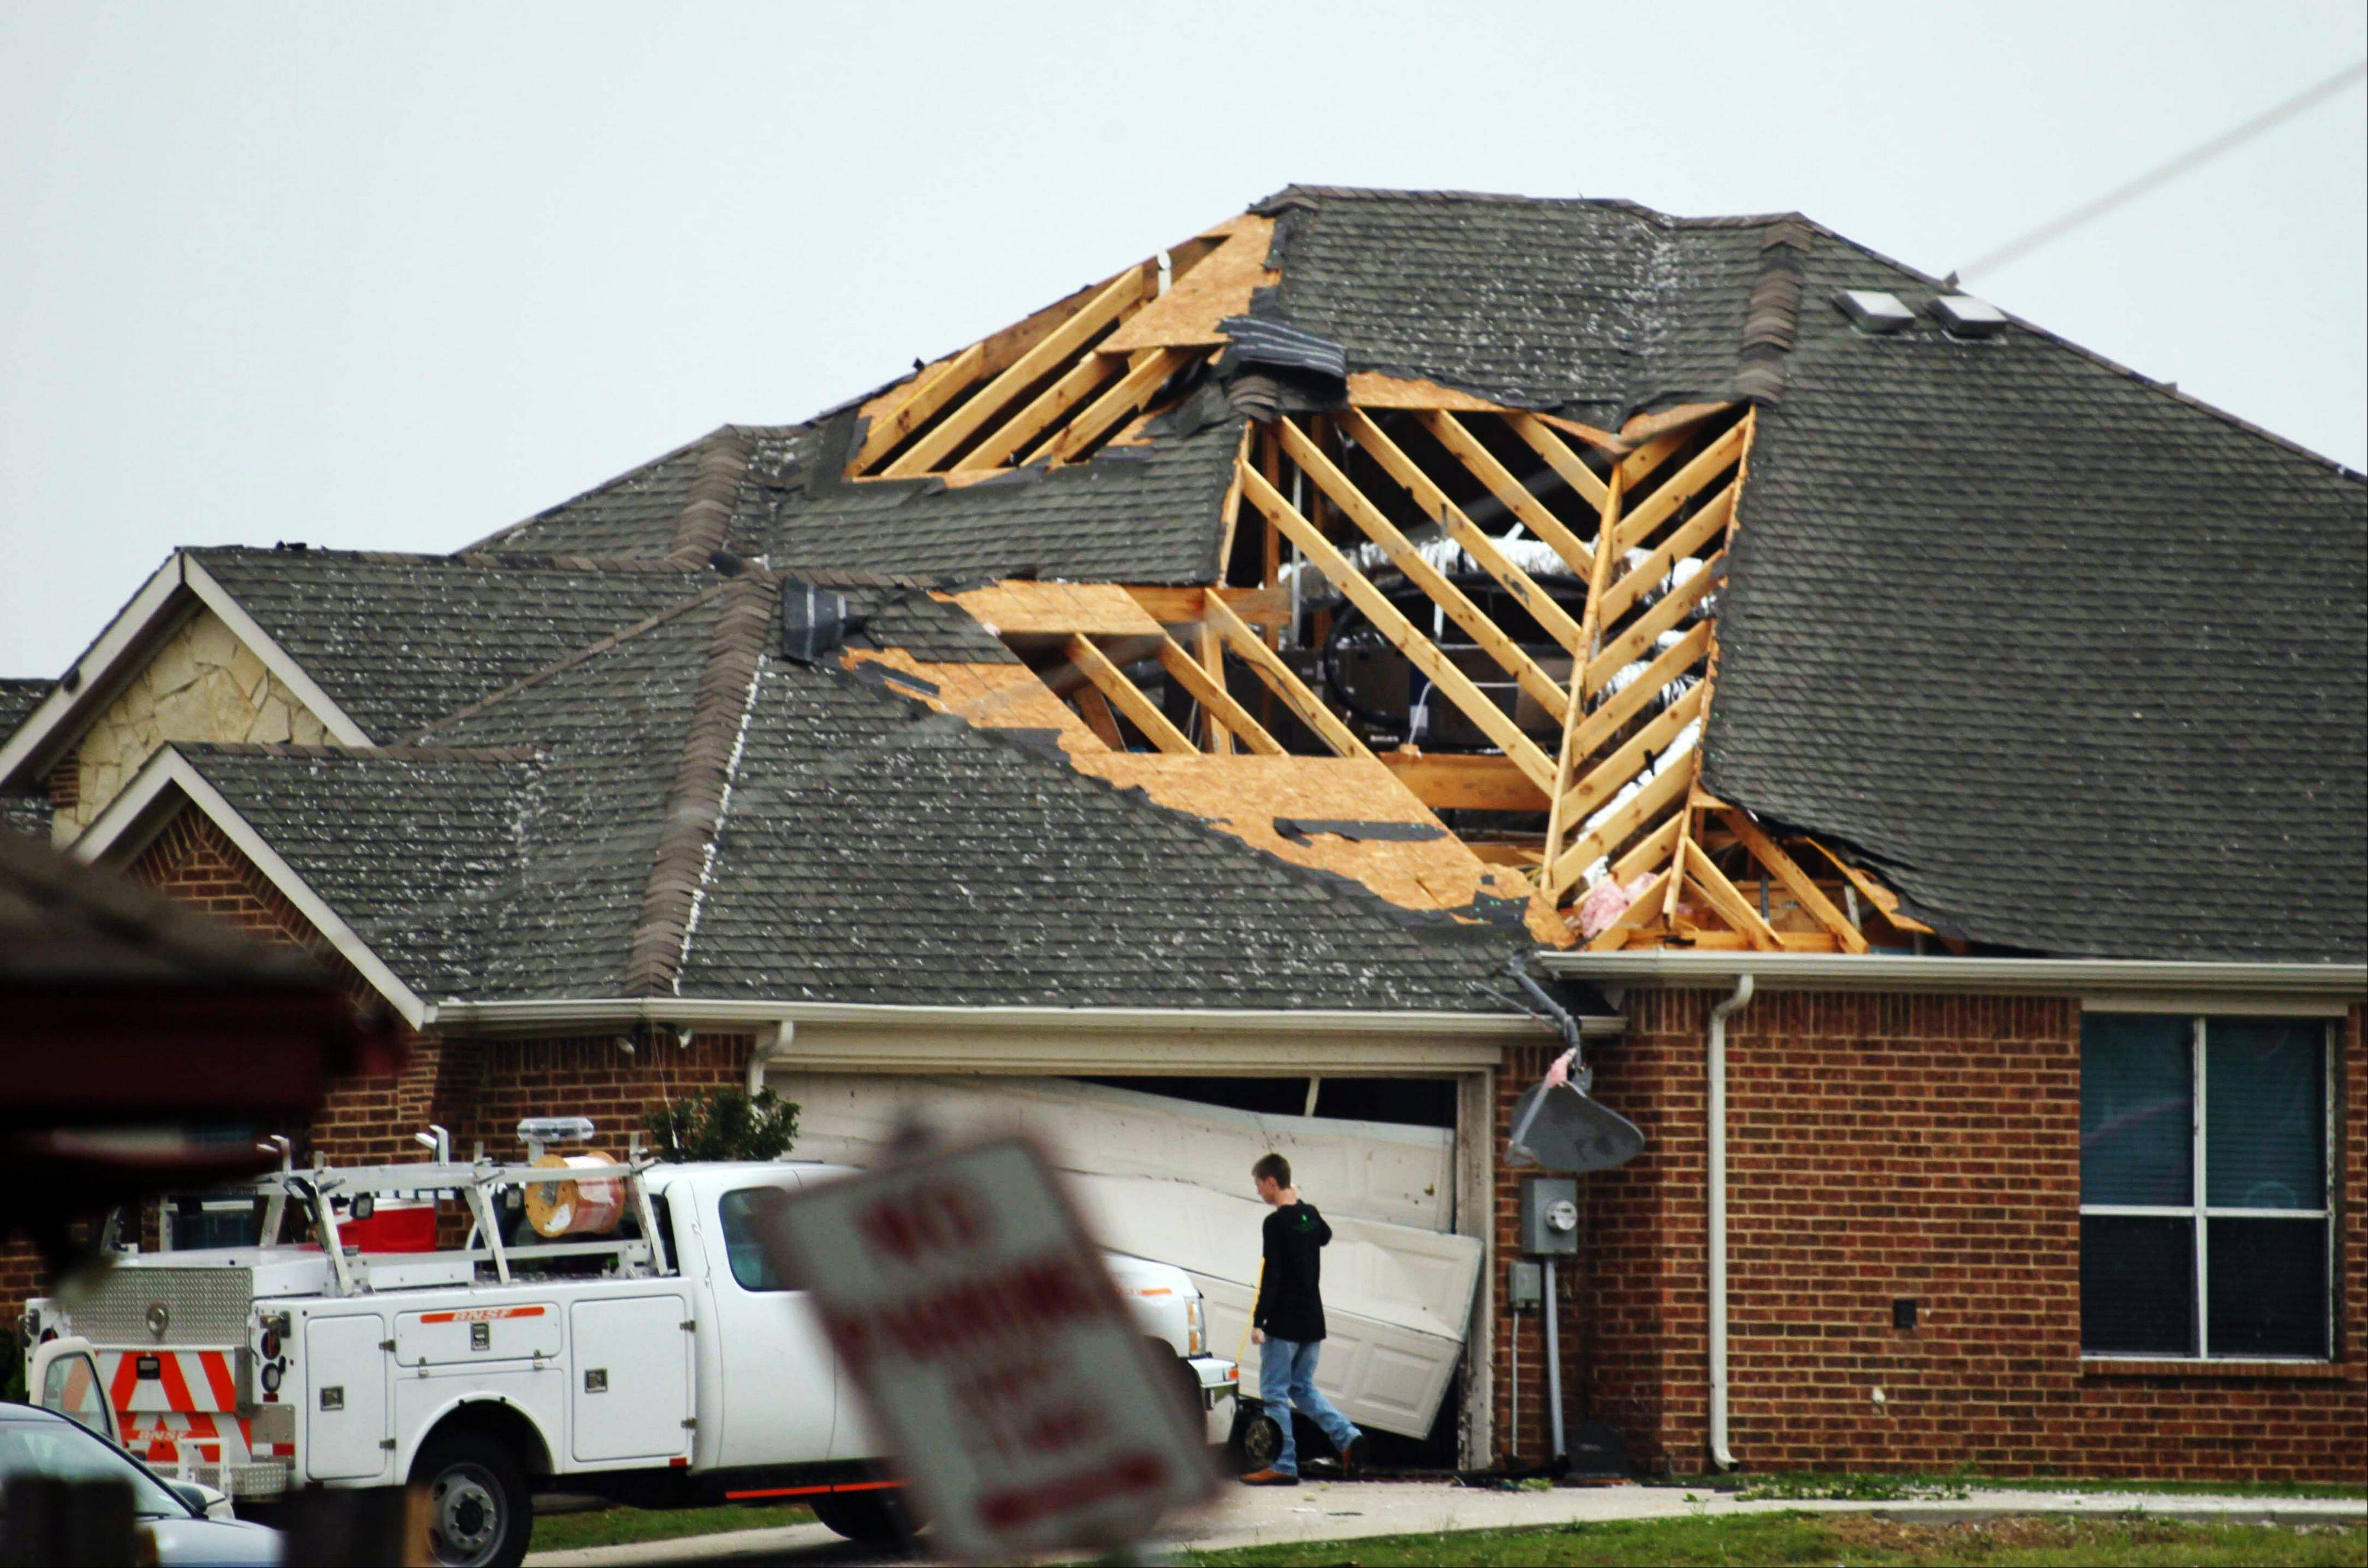 A man walks in front of a home damaged by Wednesday�s tornado in Cleburne, Texas on Thursday, May 16, 2013. Ten tornadoes touched down in several small communities in Texas overnight, leaving at least six people dead, dozens injured and hundreds homeless. Emergency responders were still searching for missing people Thursday afternoon. (